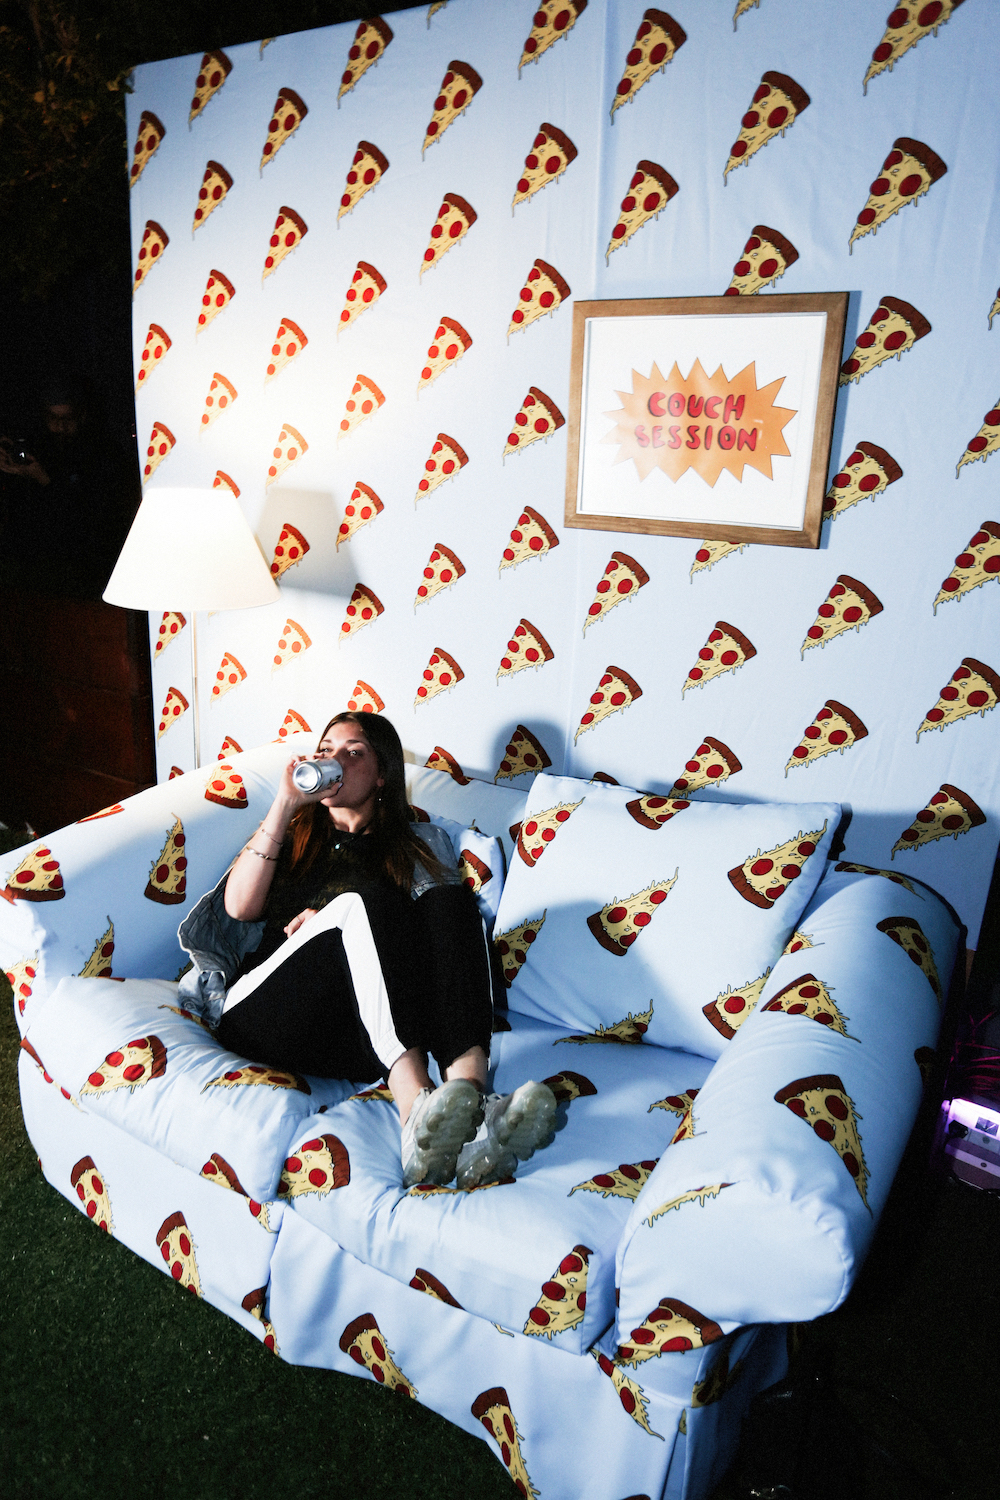 couchsessions066.JPG